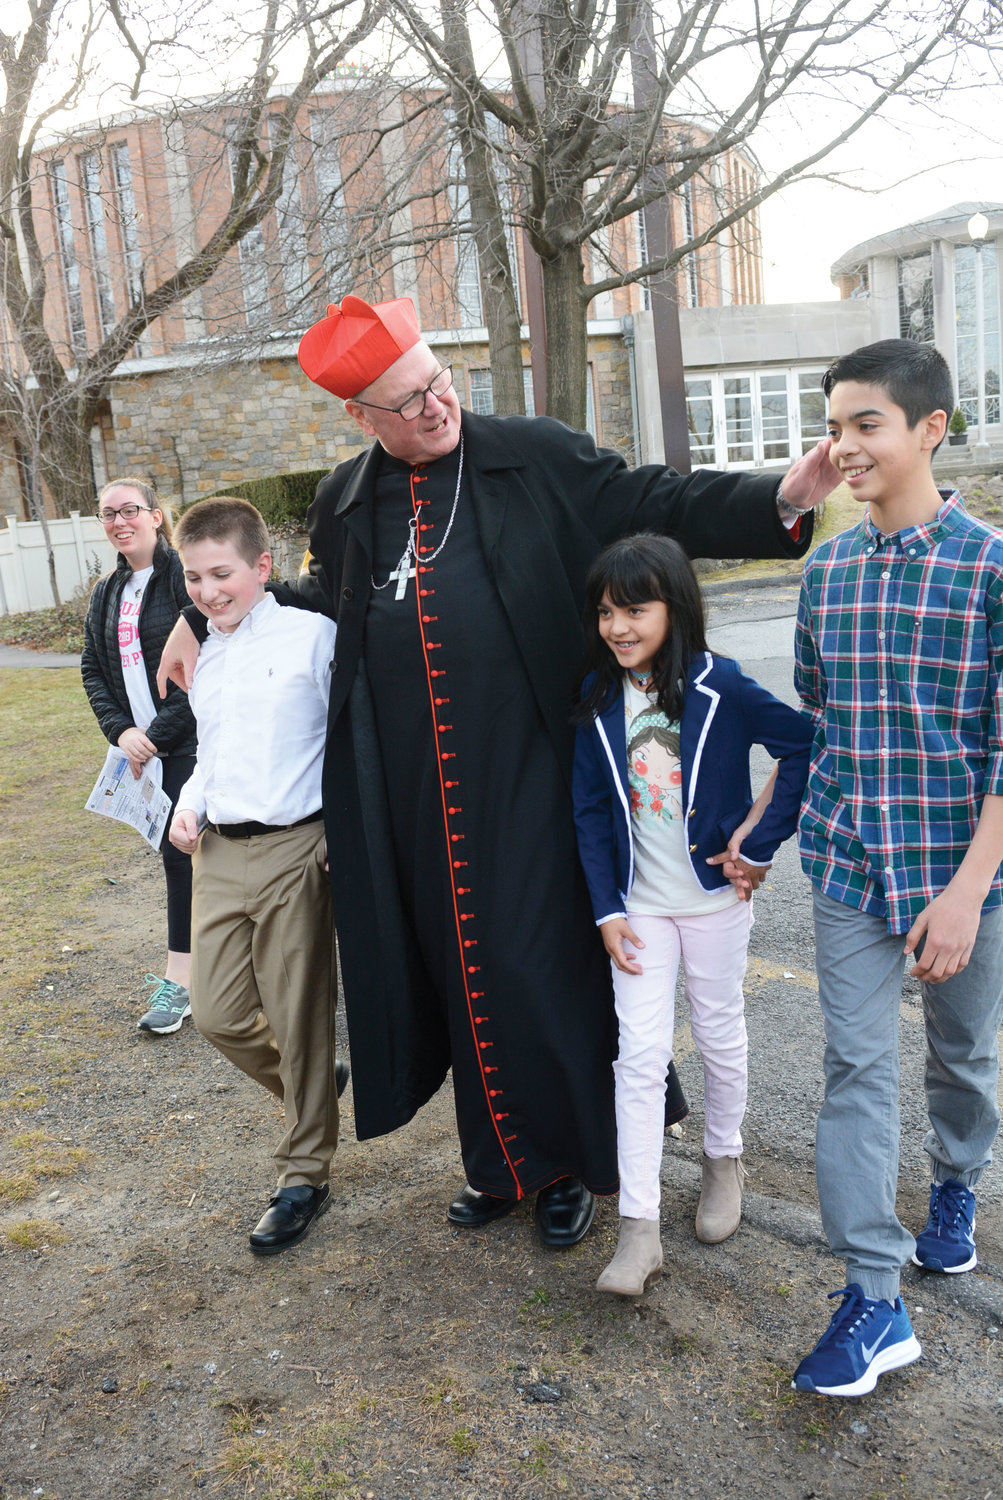 Cardinal Dolan walks with children at Our Lady of Perpetual Help and St. Catharine parish in Pelham Manor during a pastoral visit March 30.